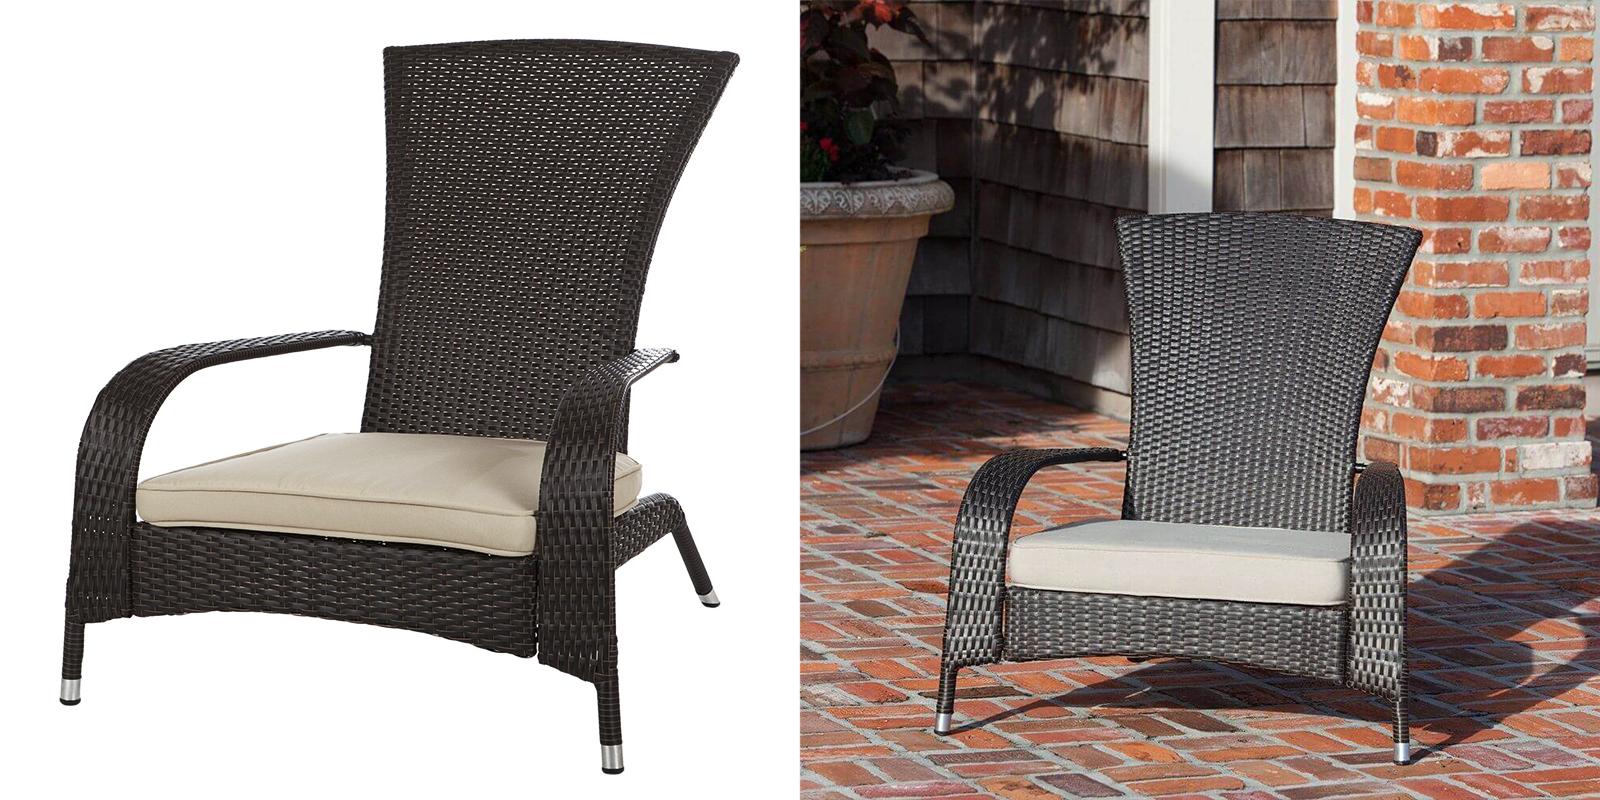 Patio Chair - Wicker Adirondack Chair